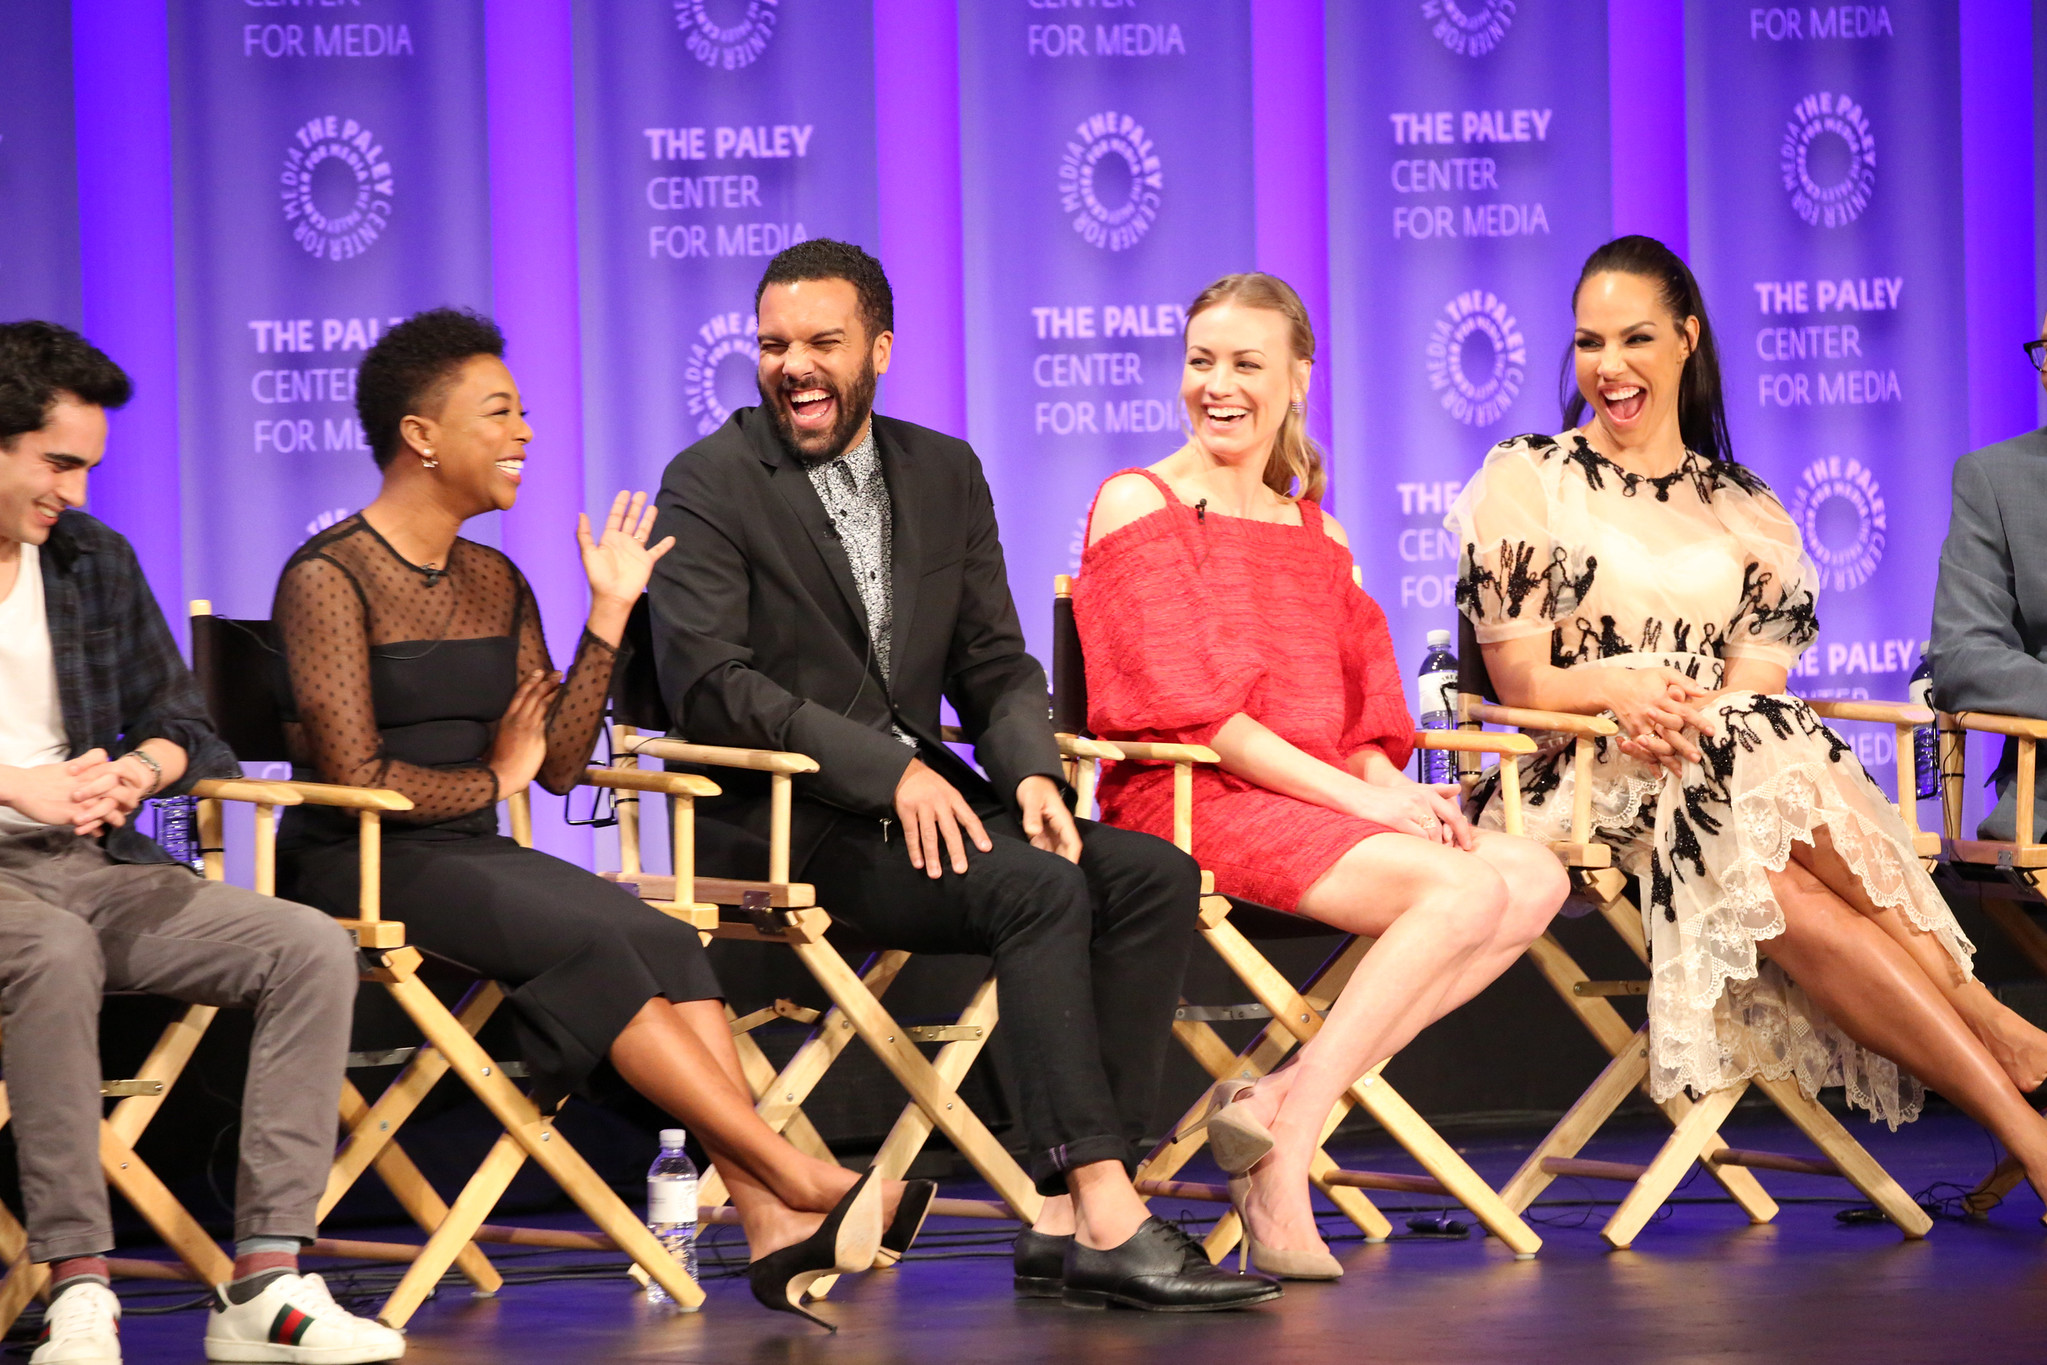 (L-R): Max Minghella, Samira Wiley, O-T Fagbenle, Yvonne Strahovski, and Amanda Brugel, attend PaleyFest LA 2018 honoring The Handmaid's Tale, presented by The Paley Center for Media, at the DOLBY THEATRE on March 18, 2018 in Hollywood, California. Photo Credit: Brian To for the Paley Center